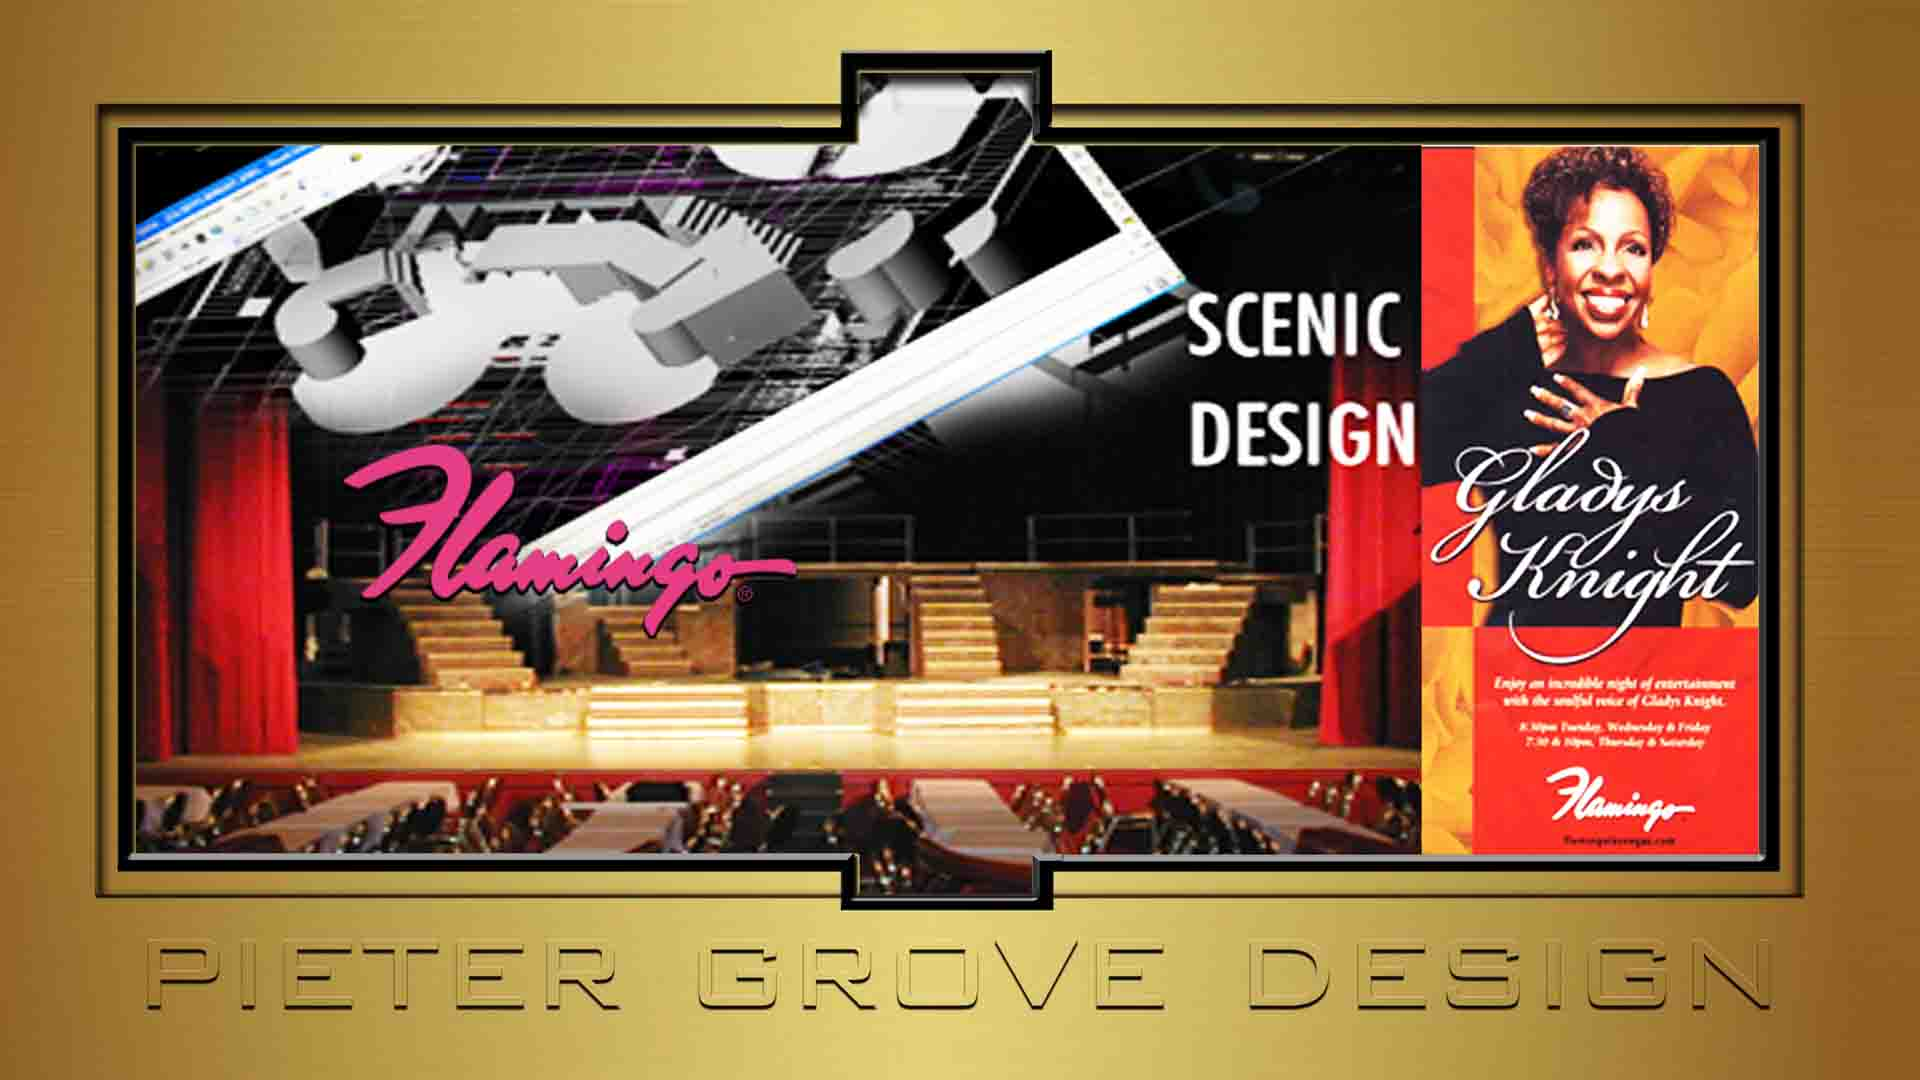 SET DESIGN - GLADYS KNIGHT - PIETER GROVE - LAS VEGAS